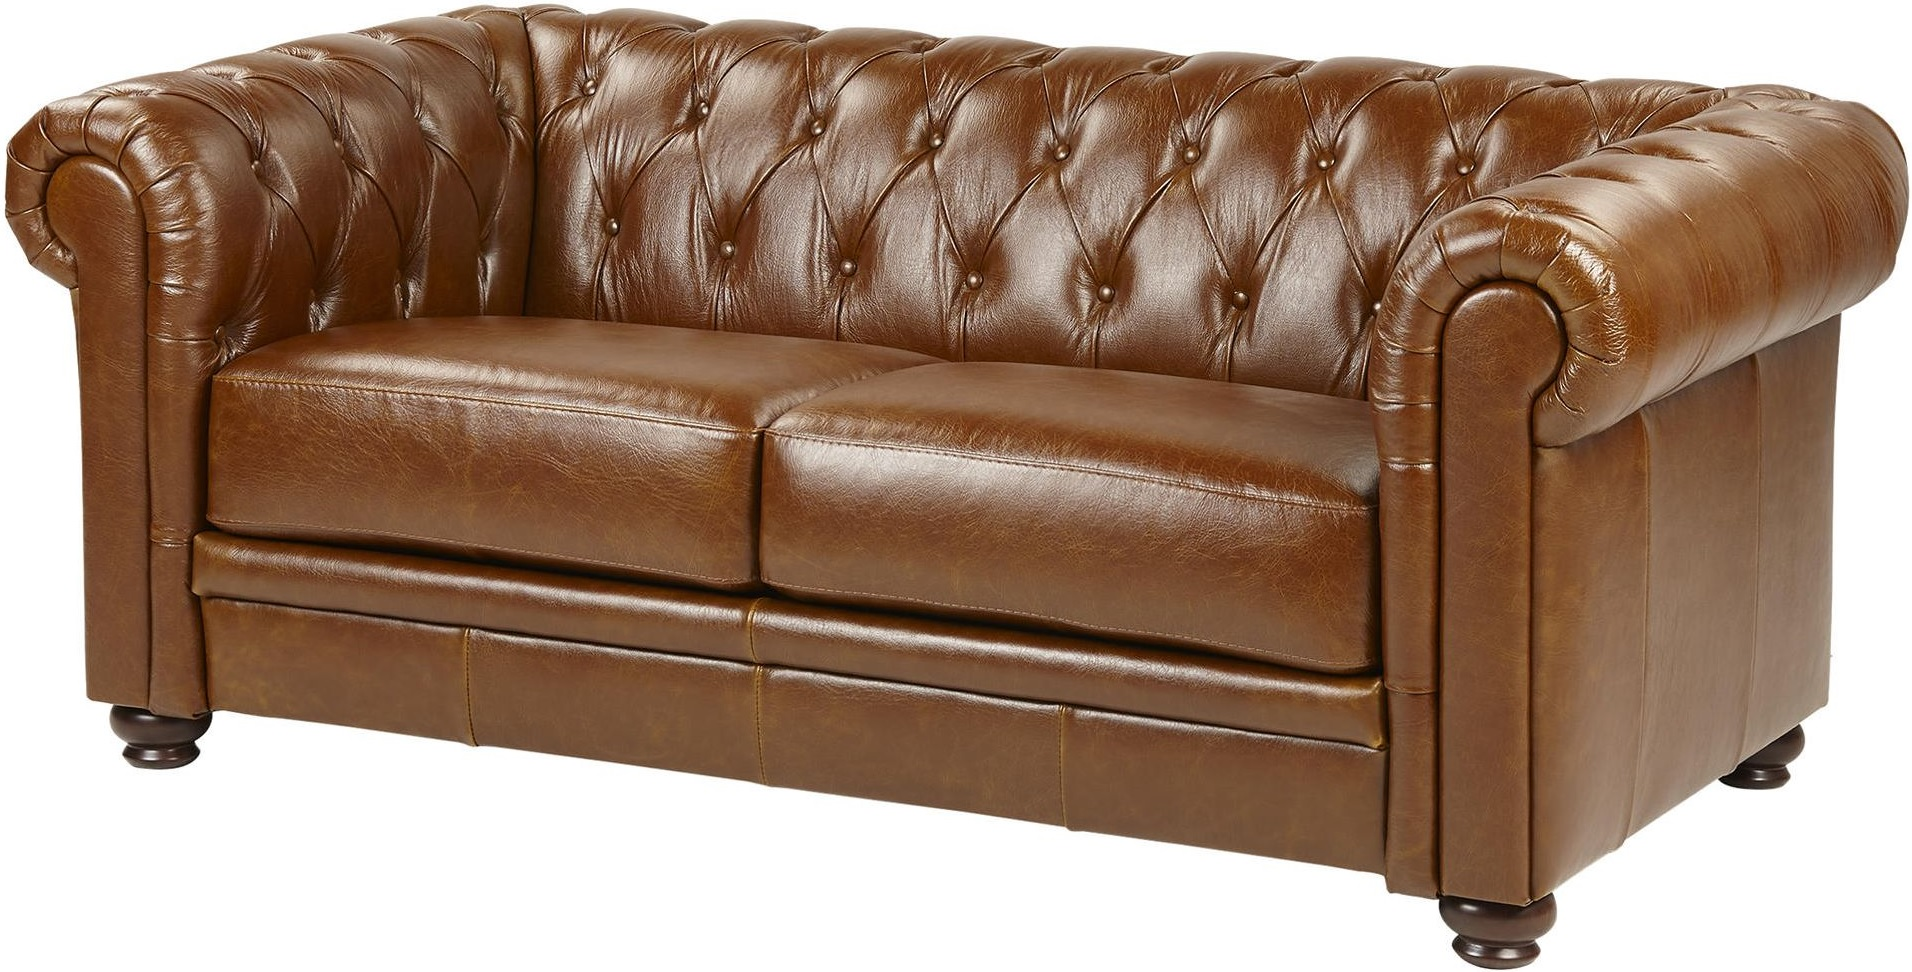 leather chesterfield sofa beige large bed tan antique belmont rub off